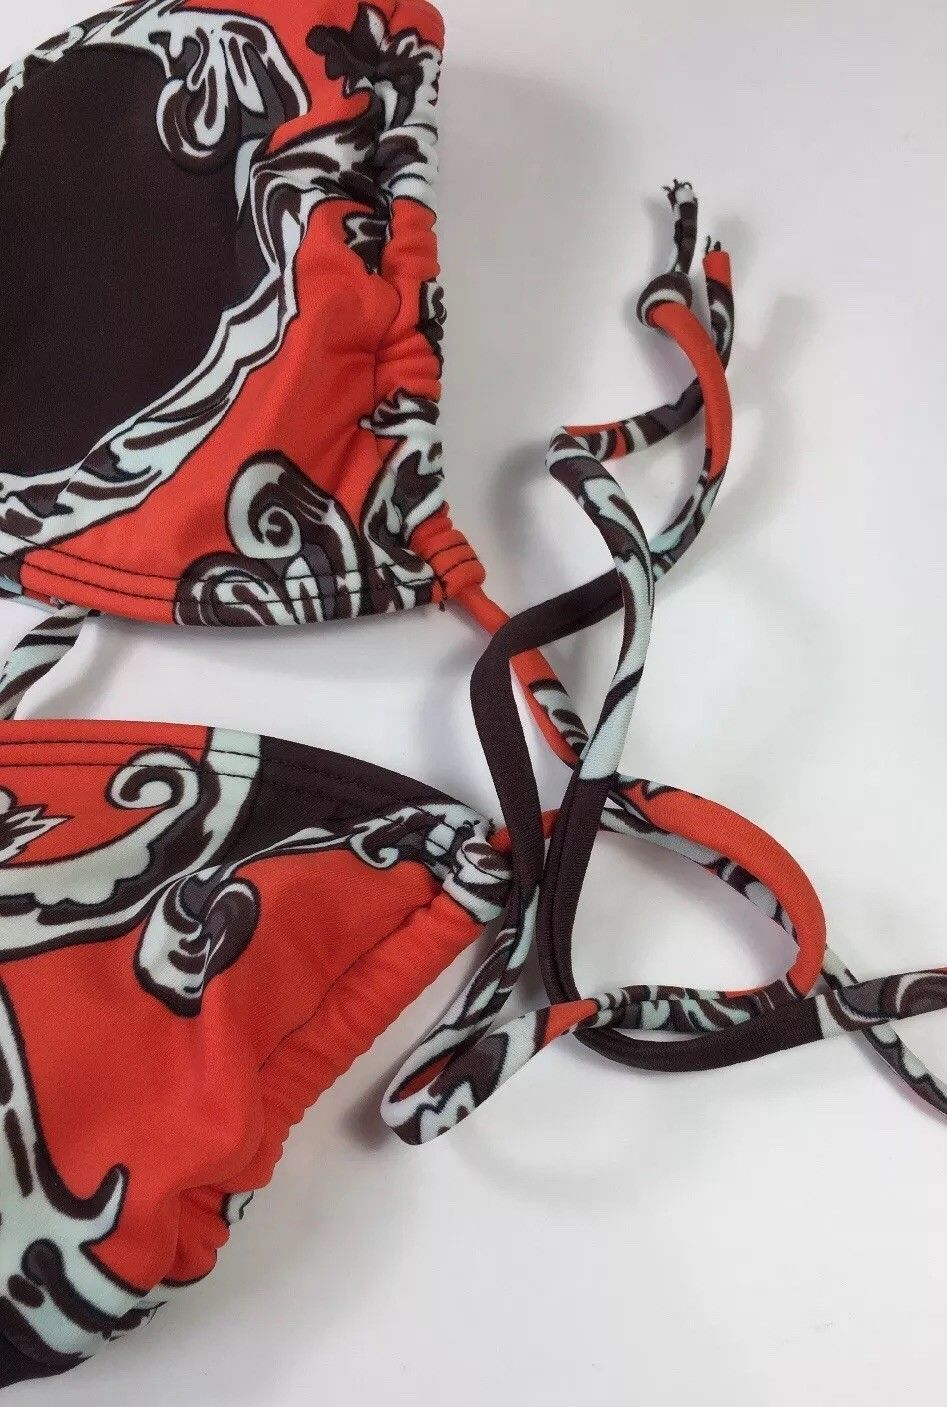 Orange Brown Floral String Bikini Rouched Swimsuit Bathing Suit Top Women's S